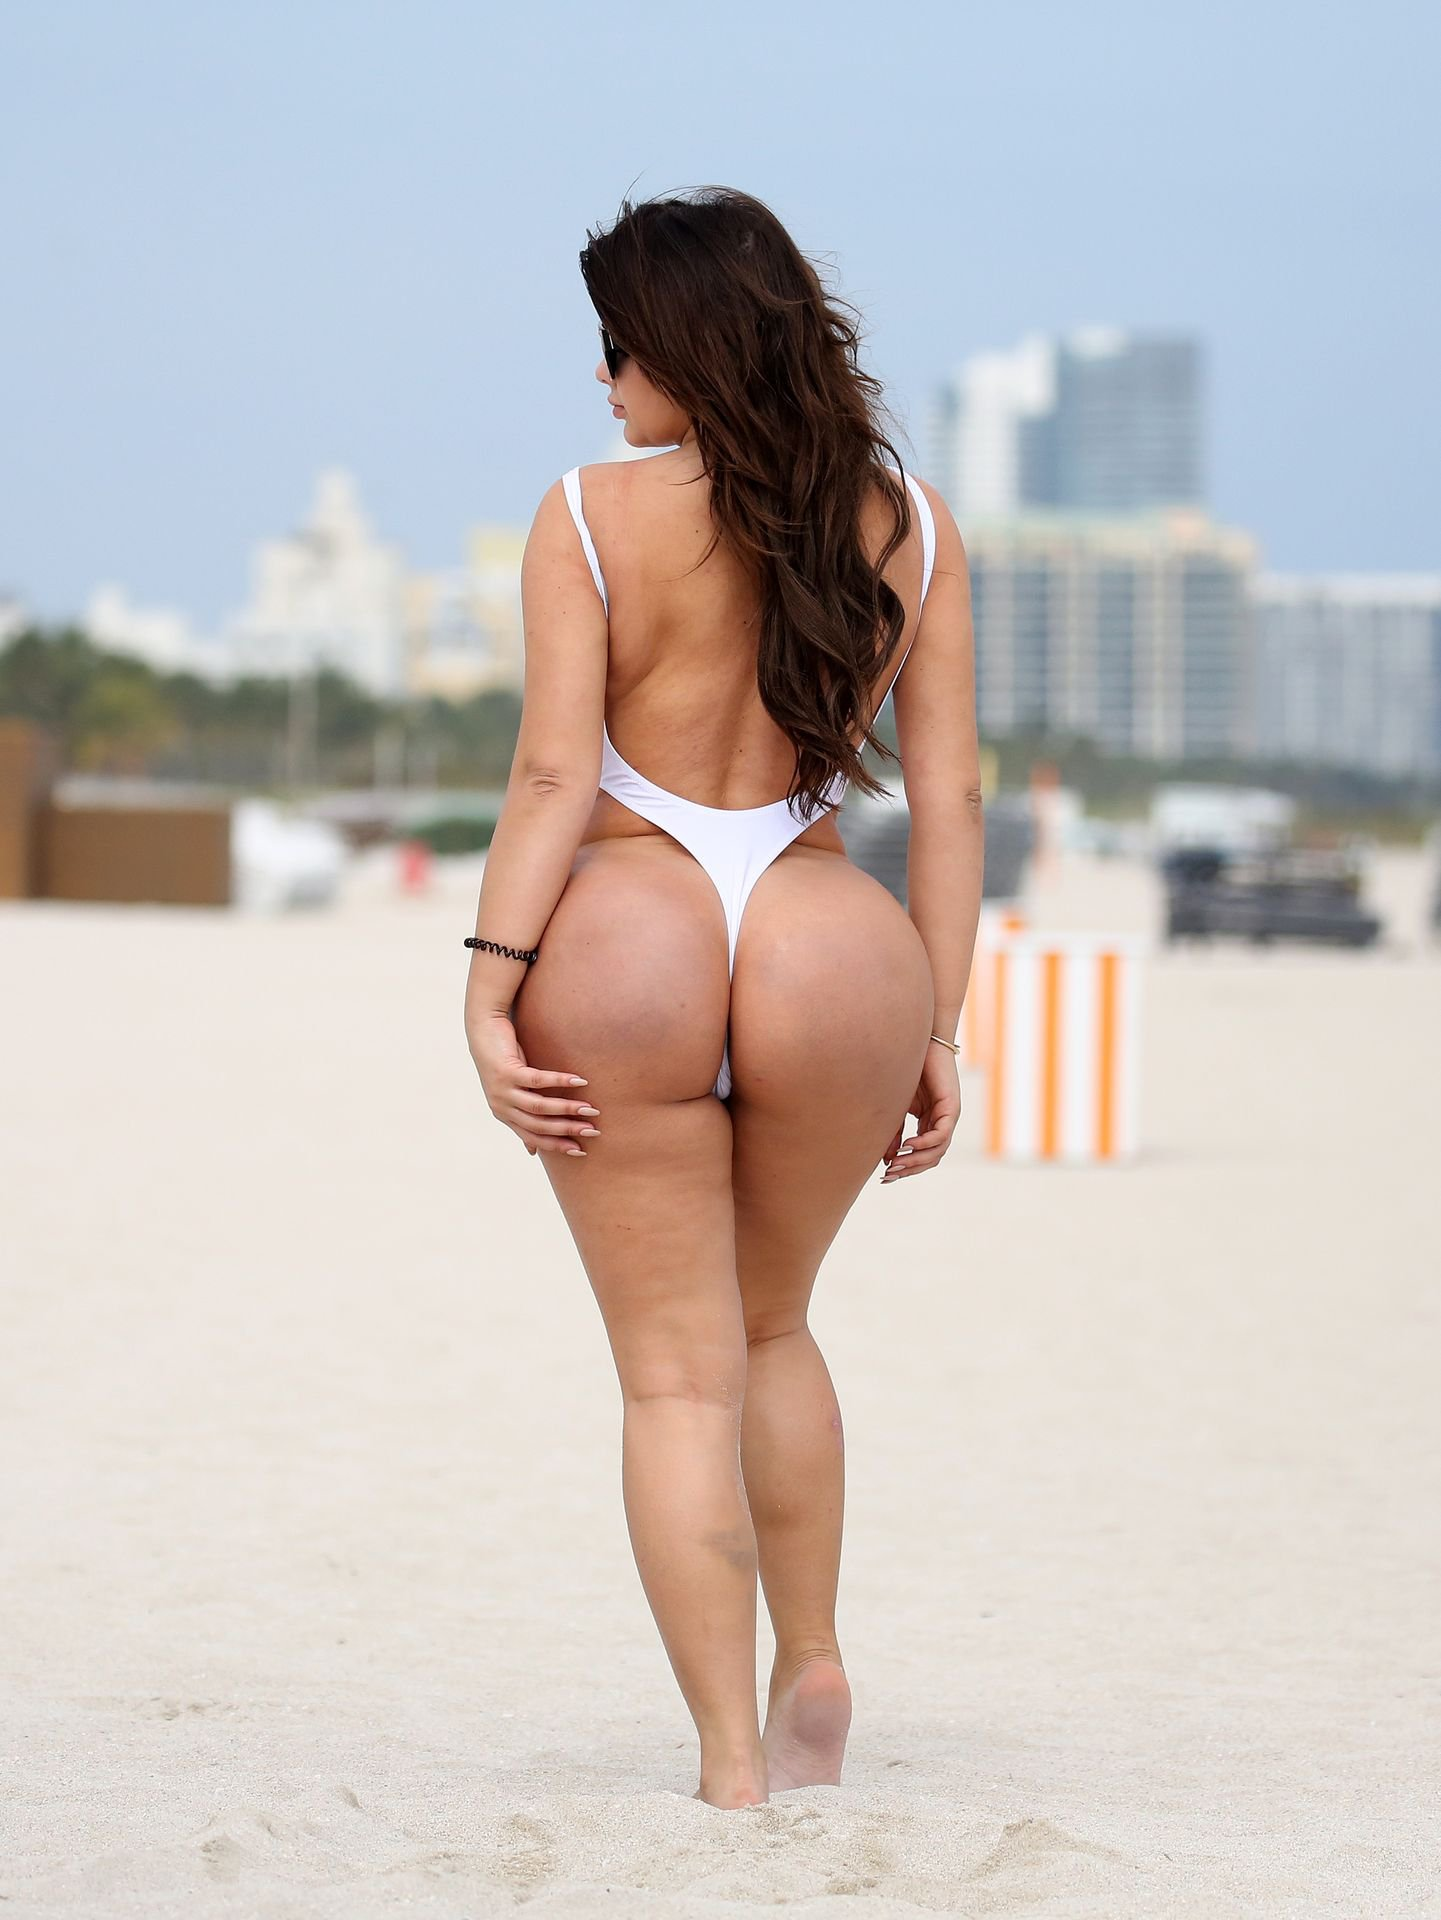 Anastasiya Kvitko – Bikini Photoshoot in Miami